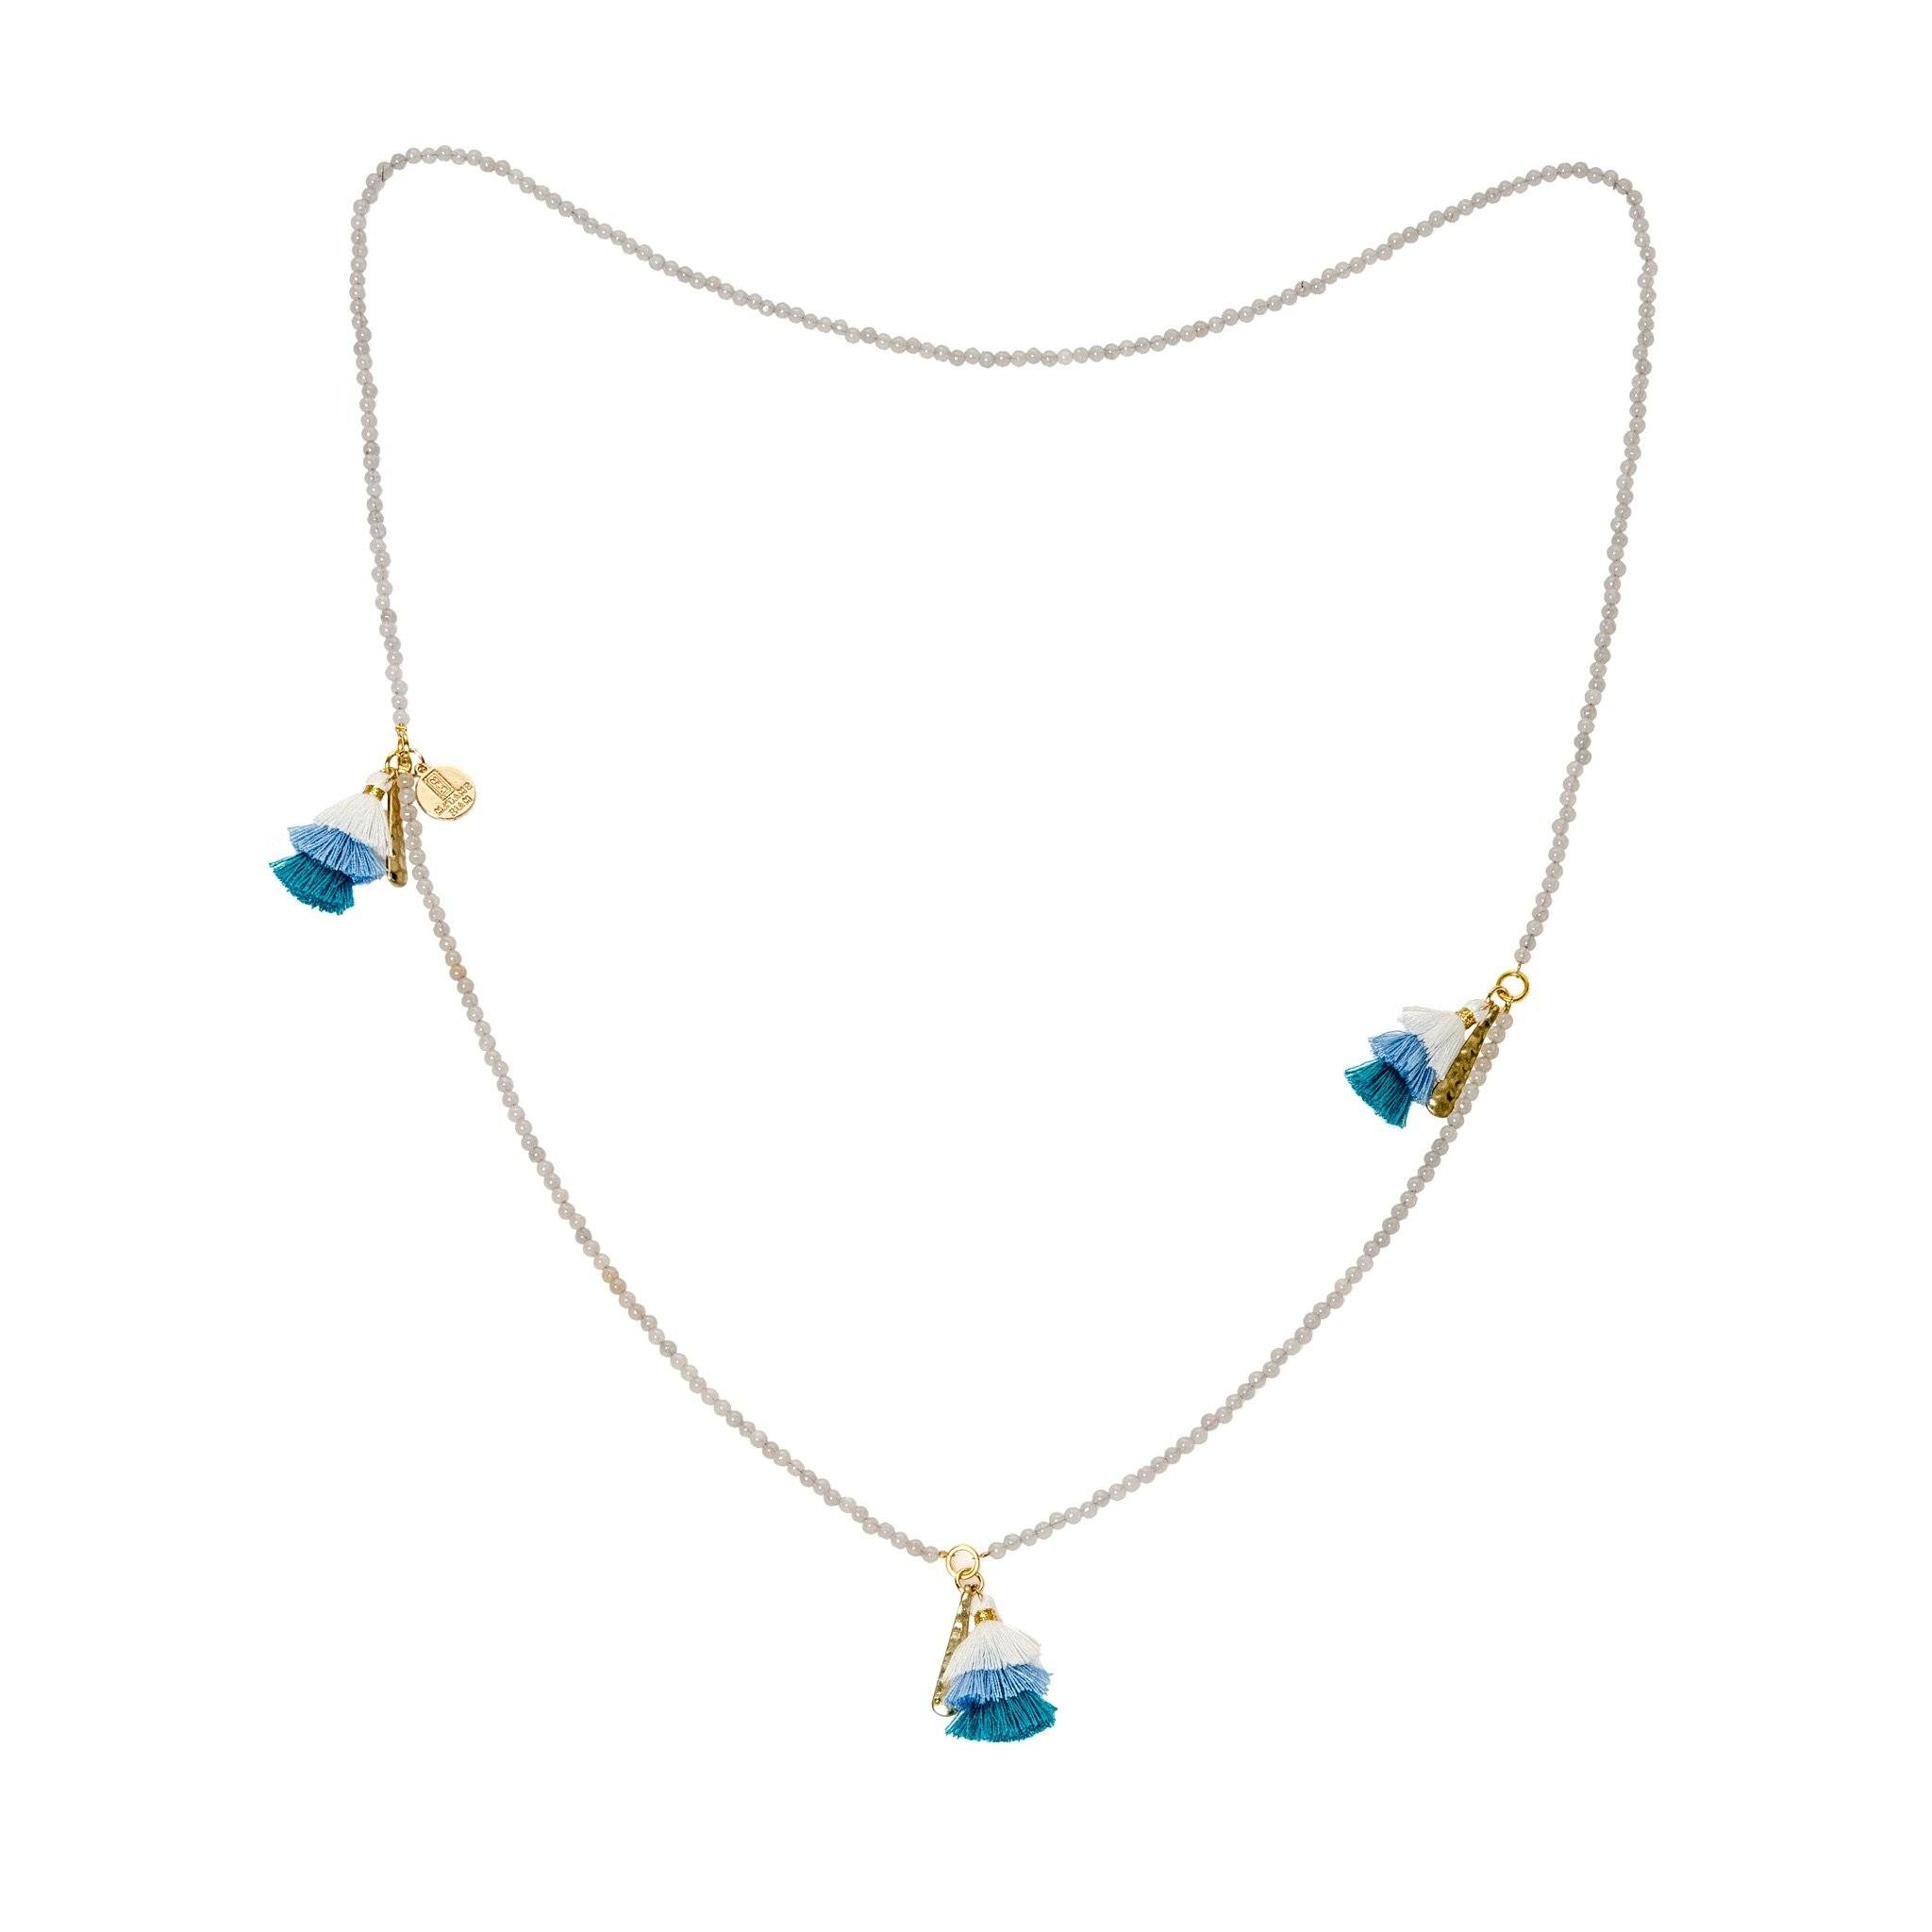 Praka moonstone and blue tassels necklace